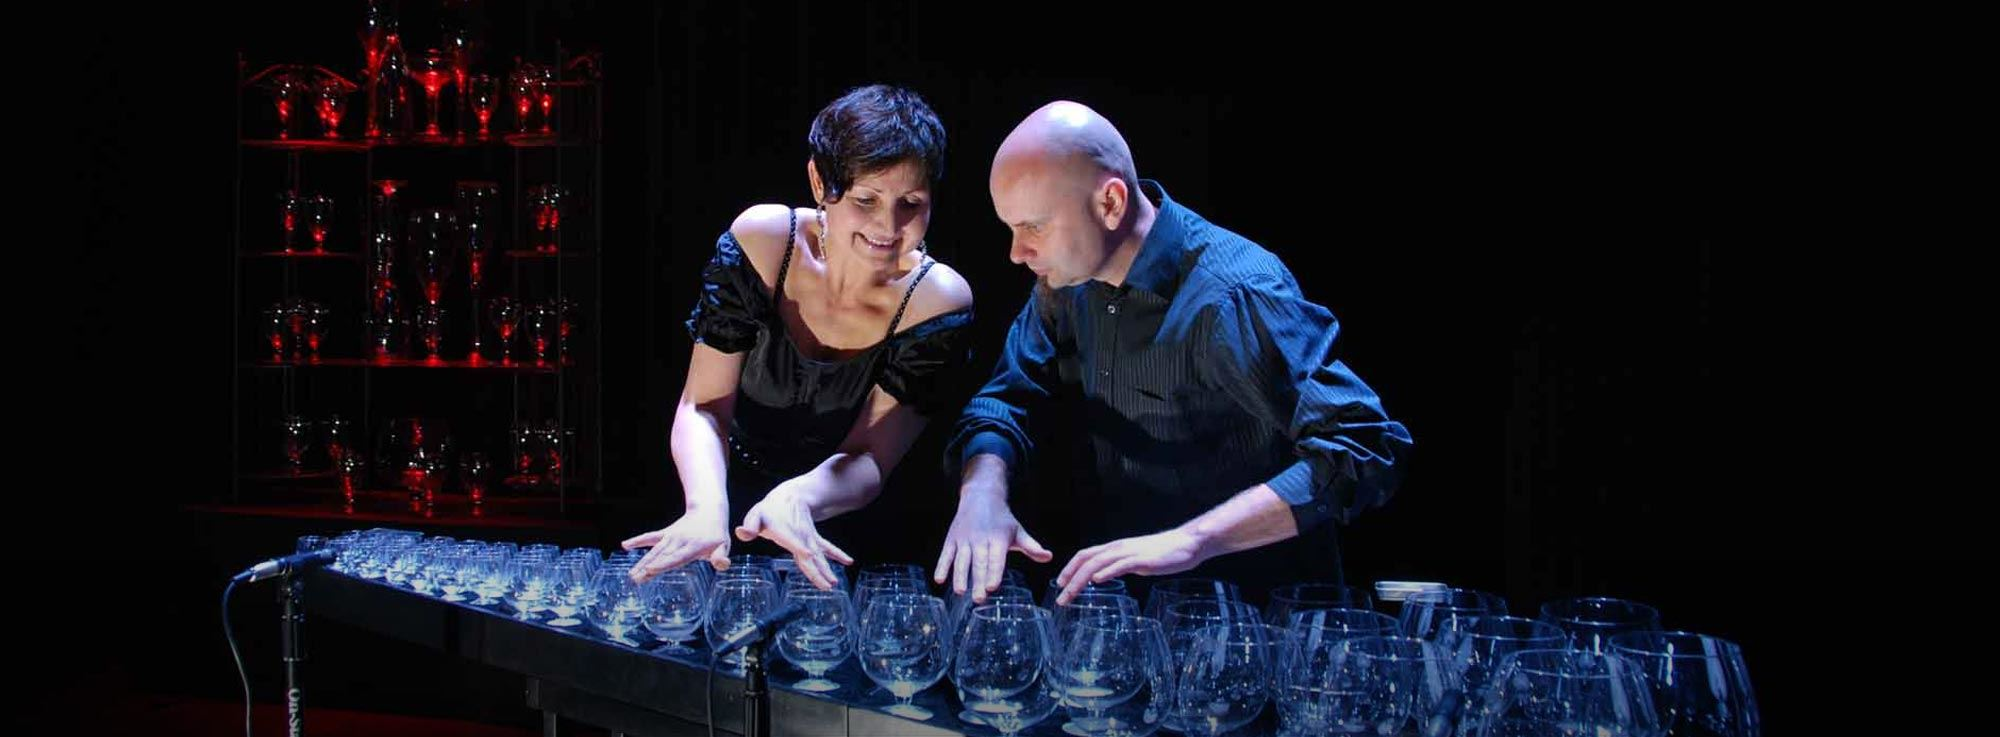 Lecce: Glass Duo - concerto